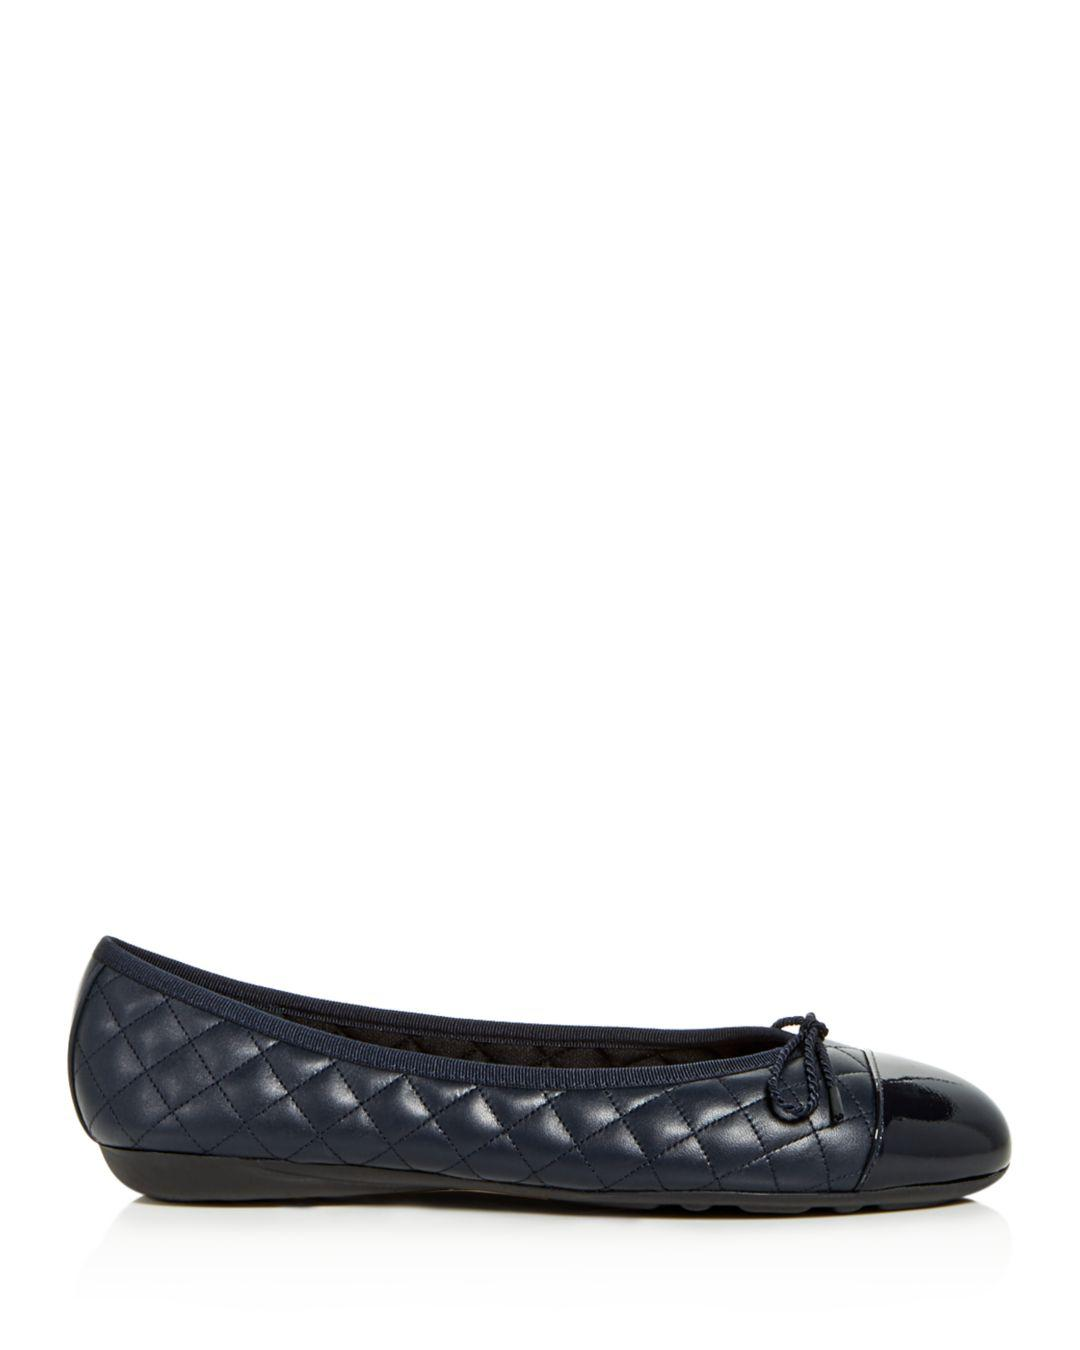 befc1ca17 Paul Mayer Ballet Flats - Best Quilted in Blue - Lyst